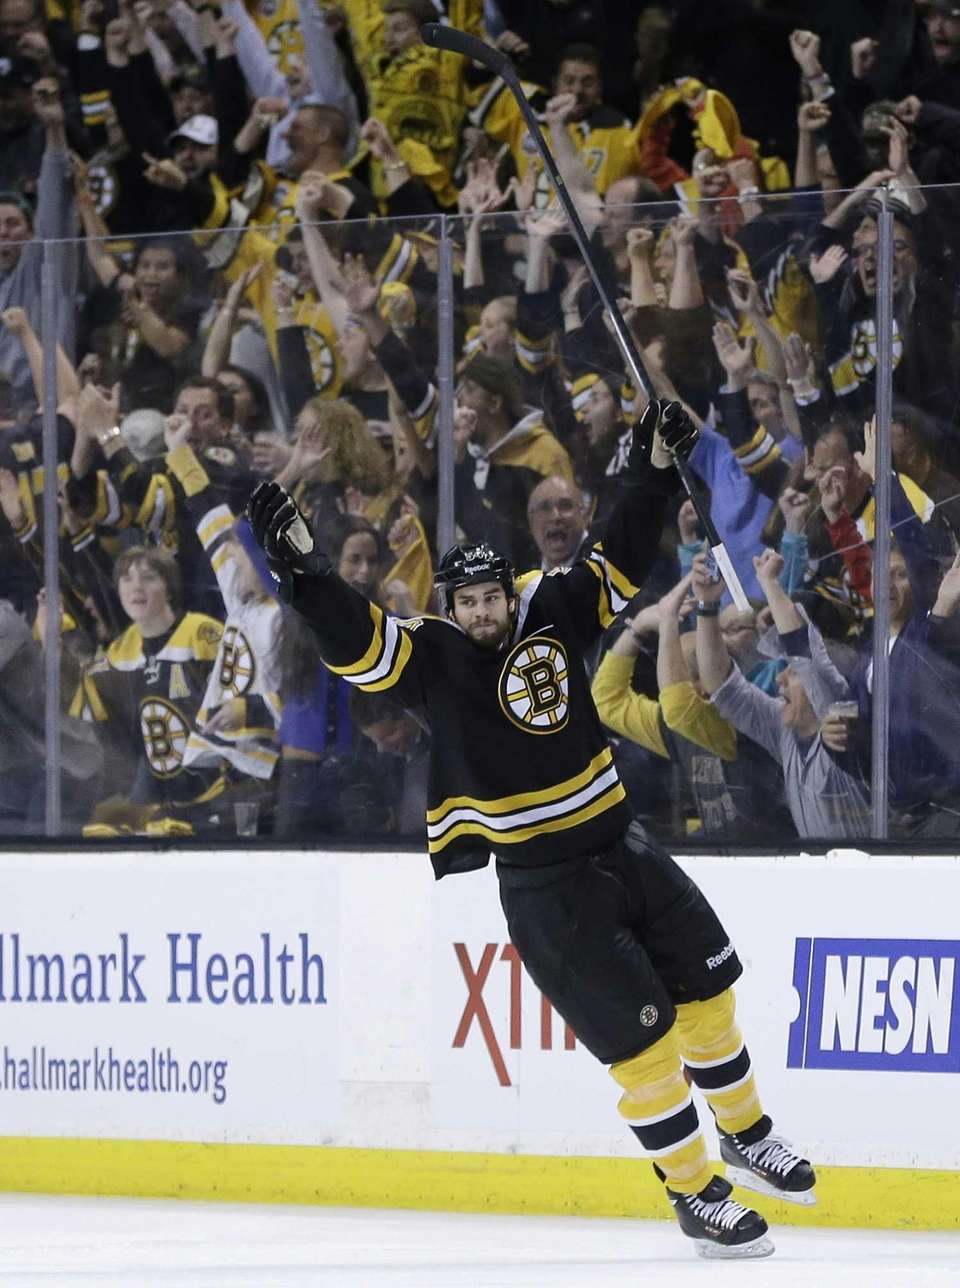 Boston Bruins defenseman Adam McQuaid celebrates his goal